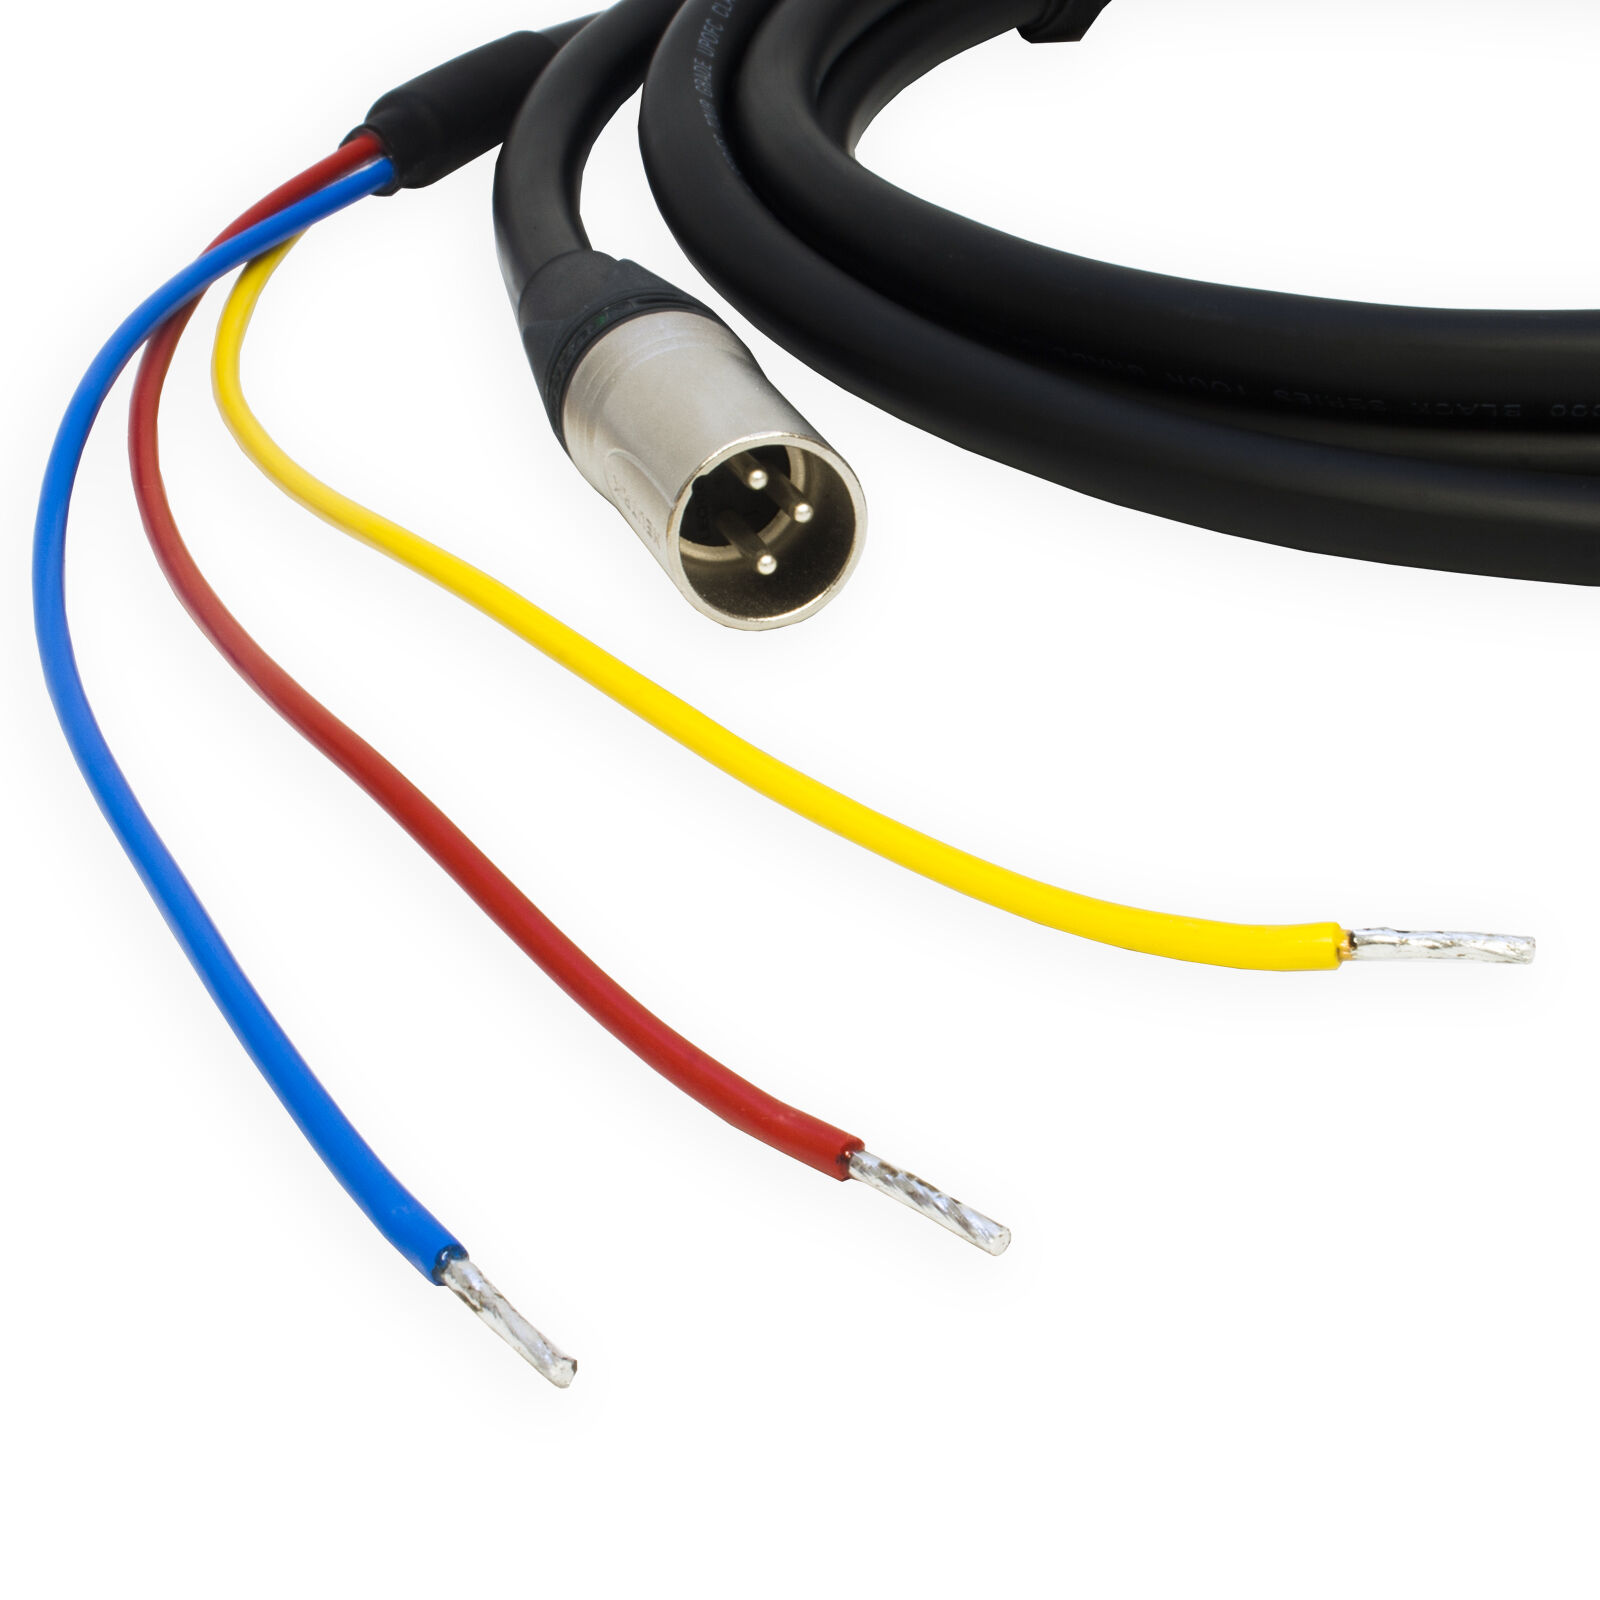 Speakon Wiring For Speaker Wire Data Schema Audio Connectors Rel Mj Acoustics 3 Sub Cable Neutrik